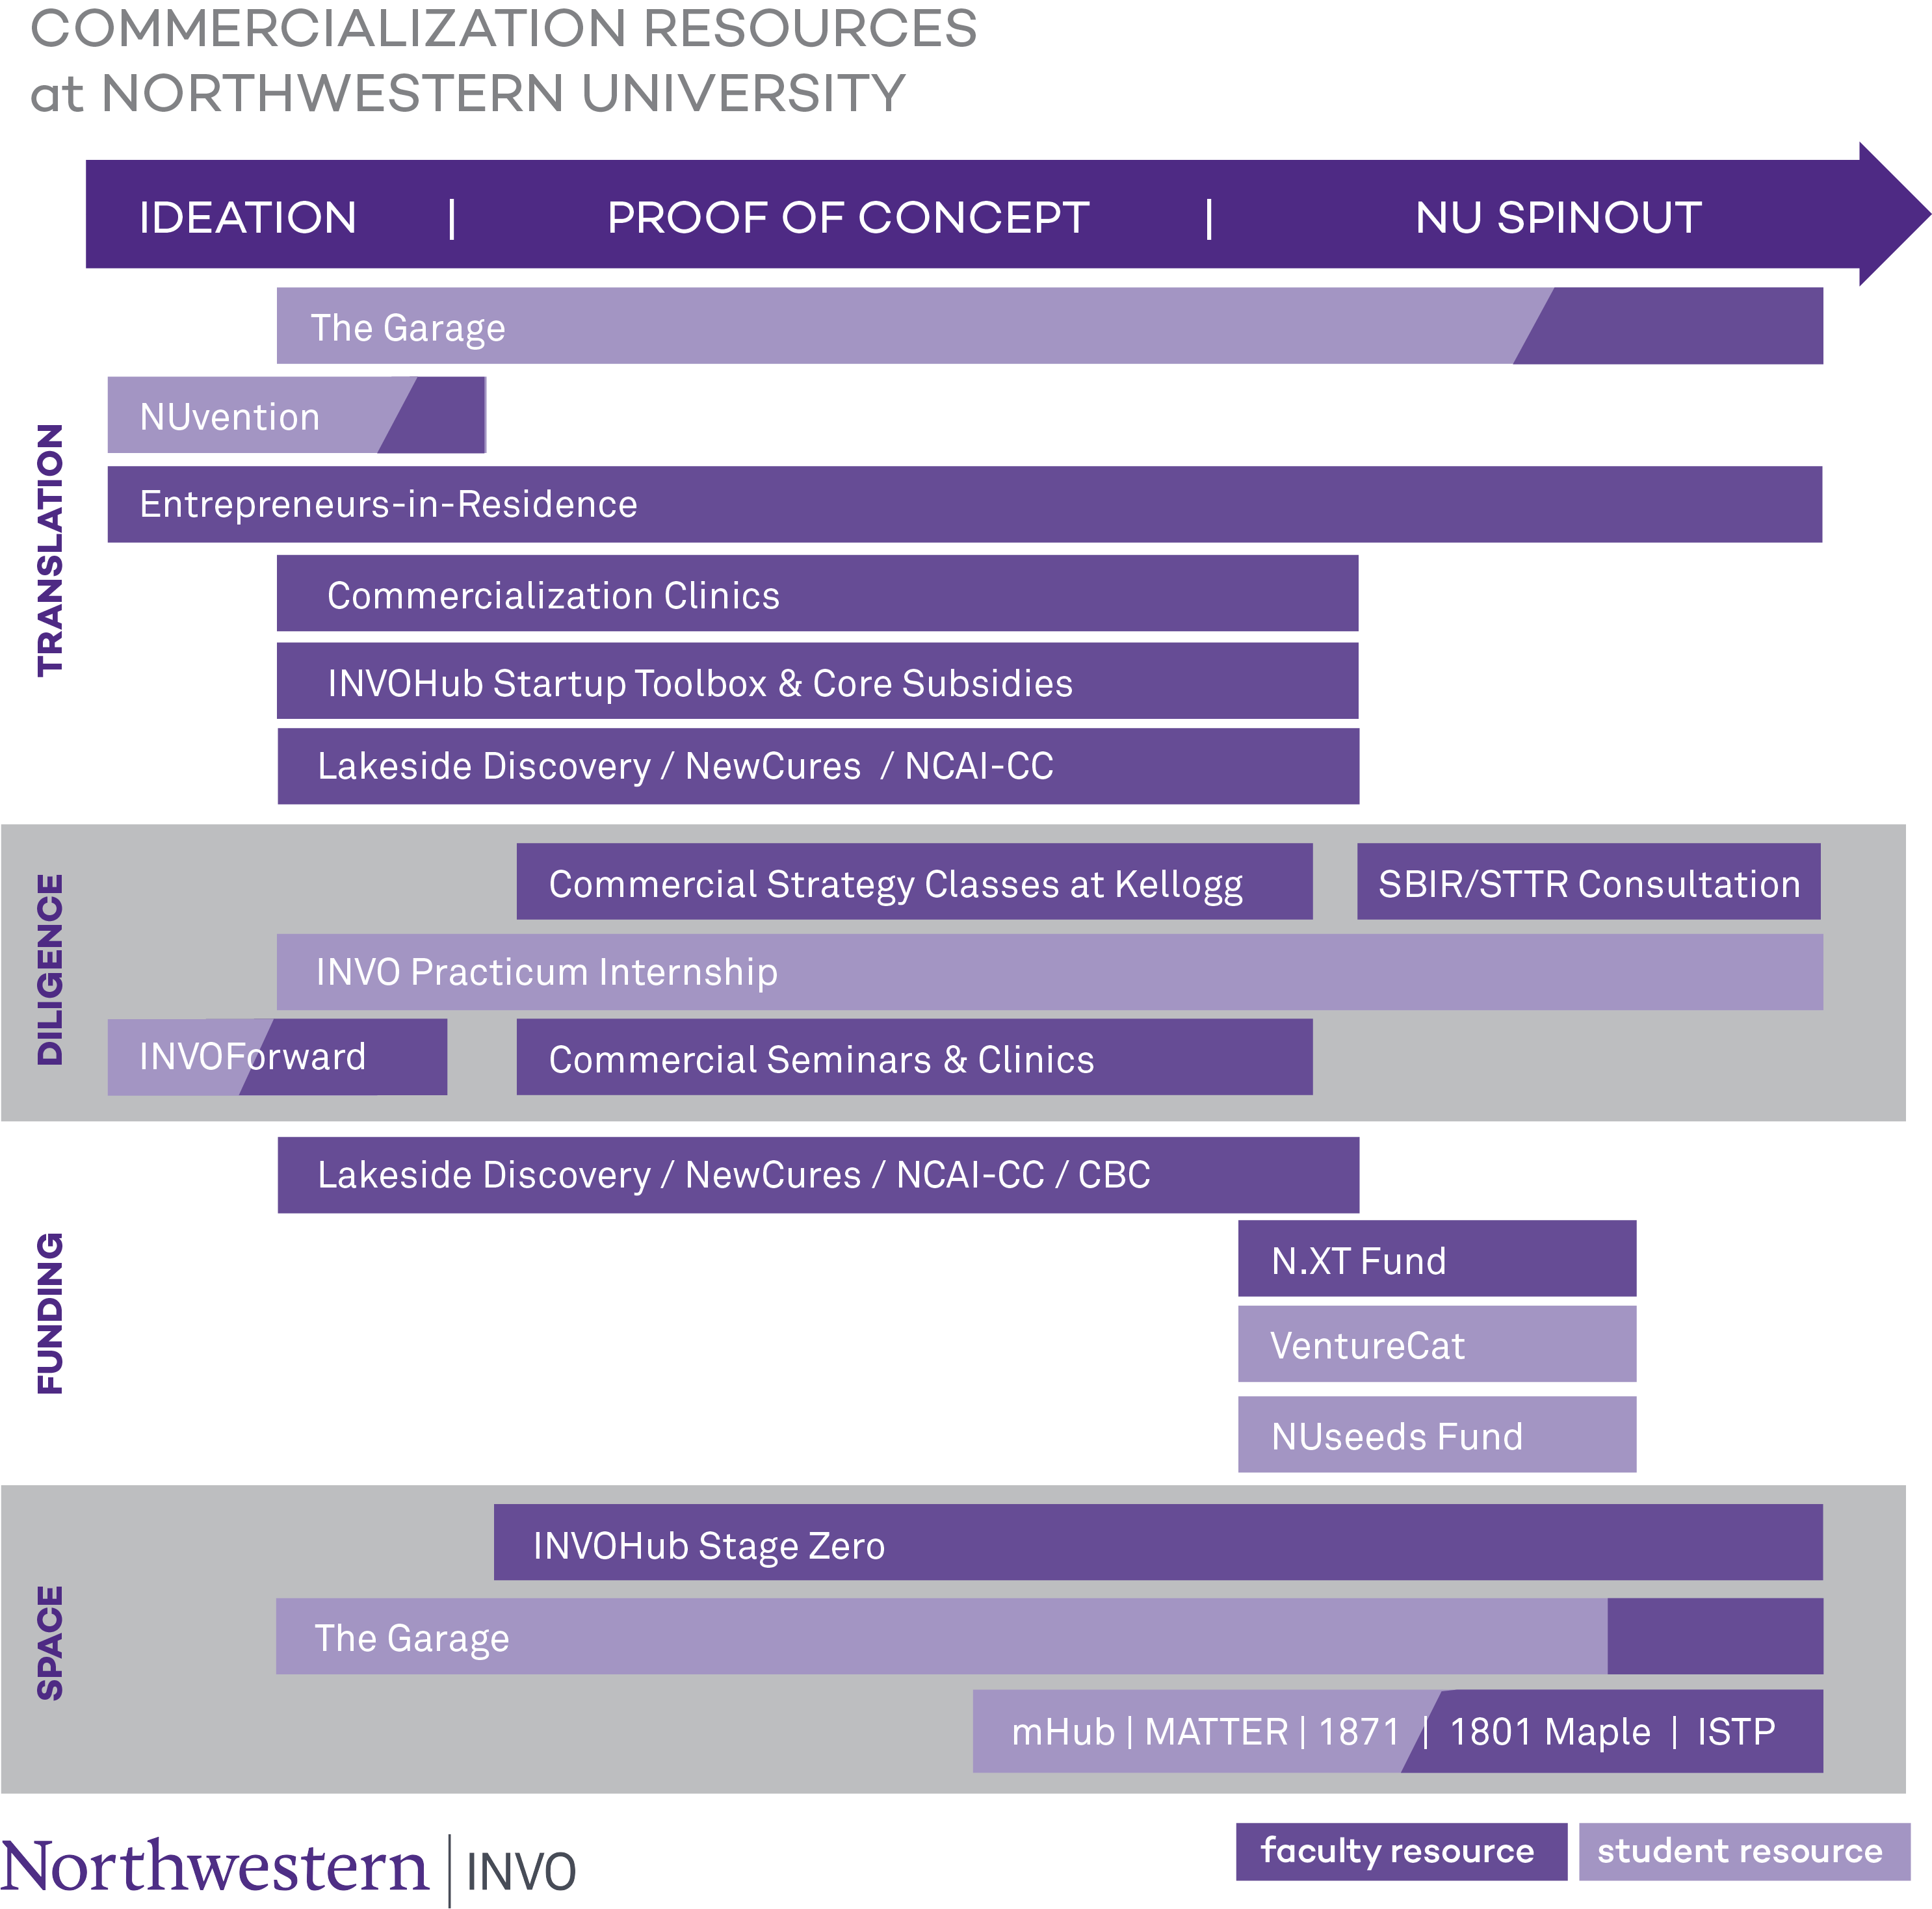 Commercialization Resources at Northwestern University